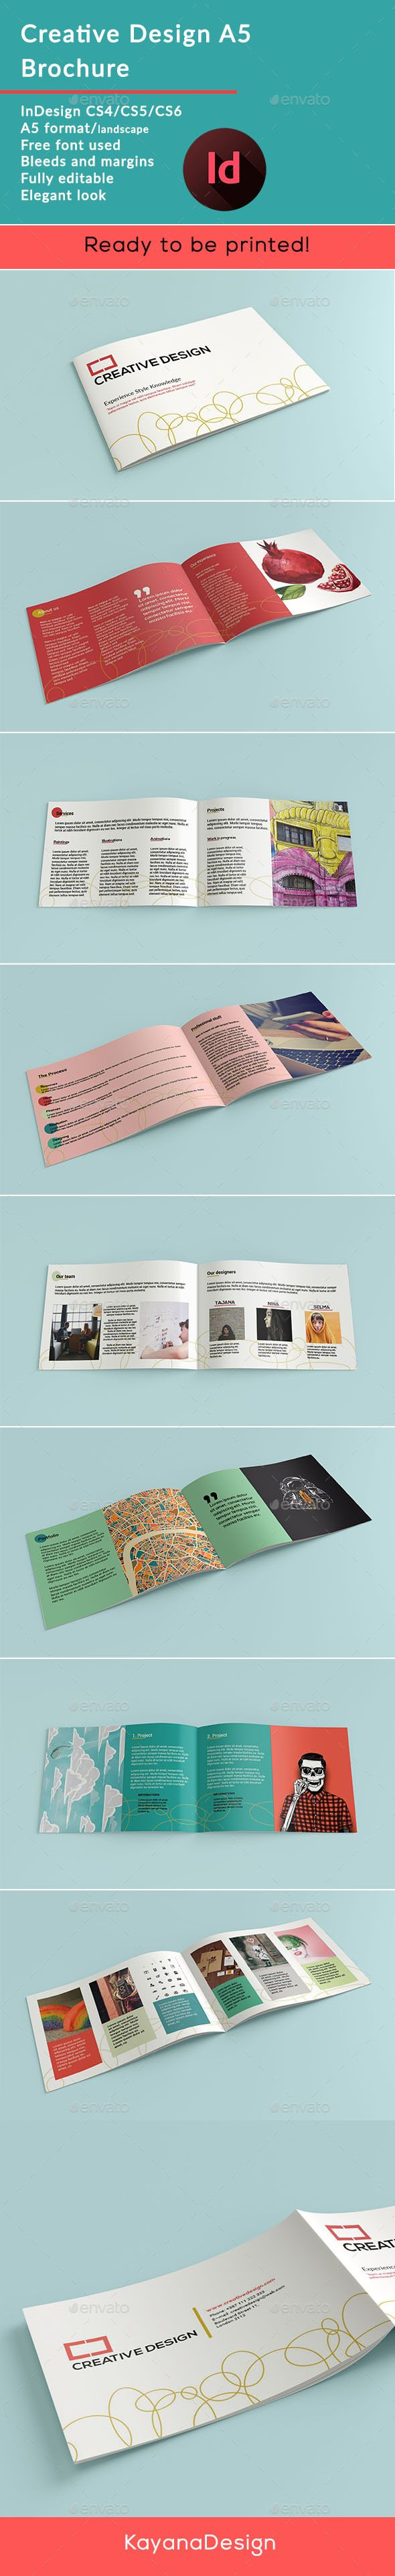 Creative Design A5 Brochure Template InDesign INDD